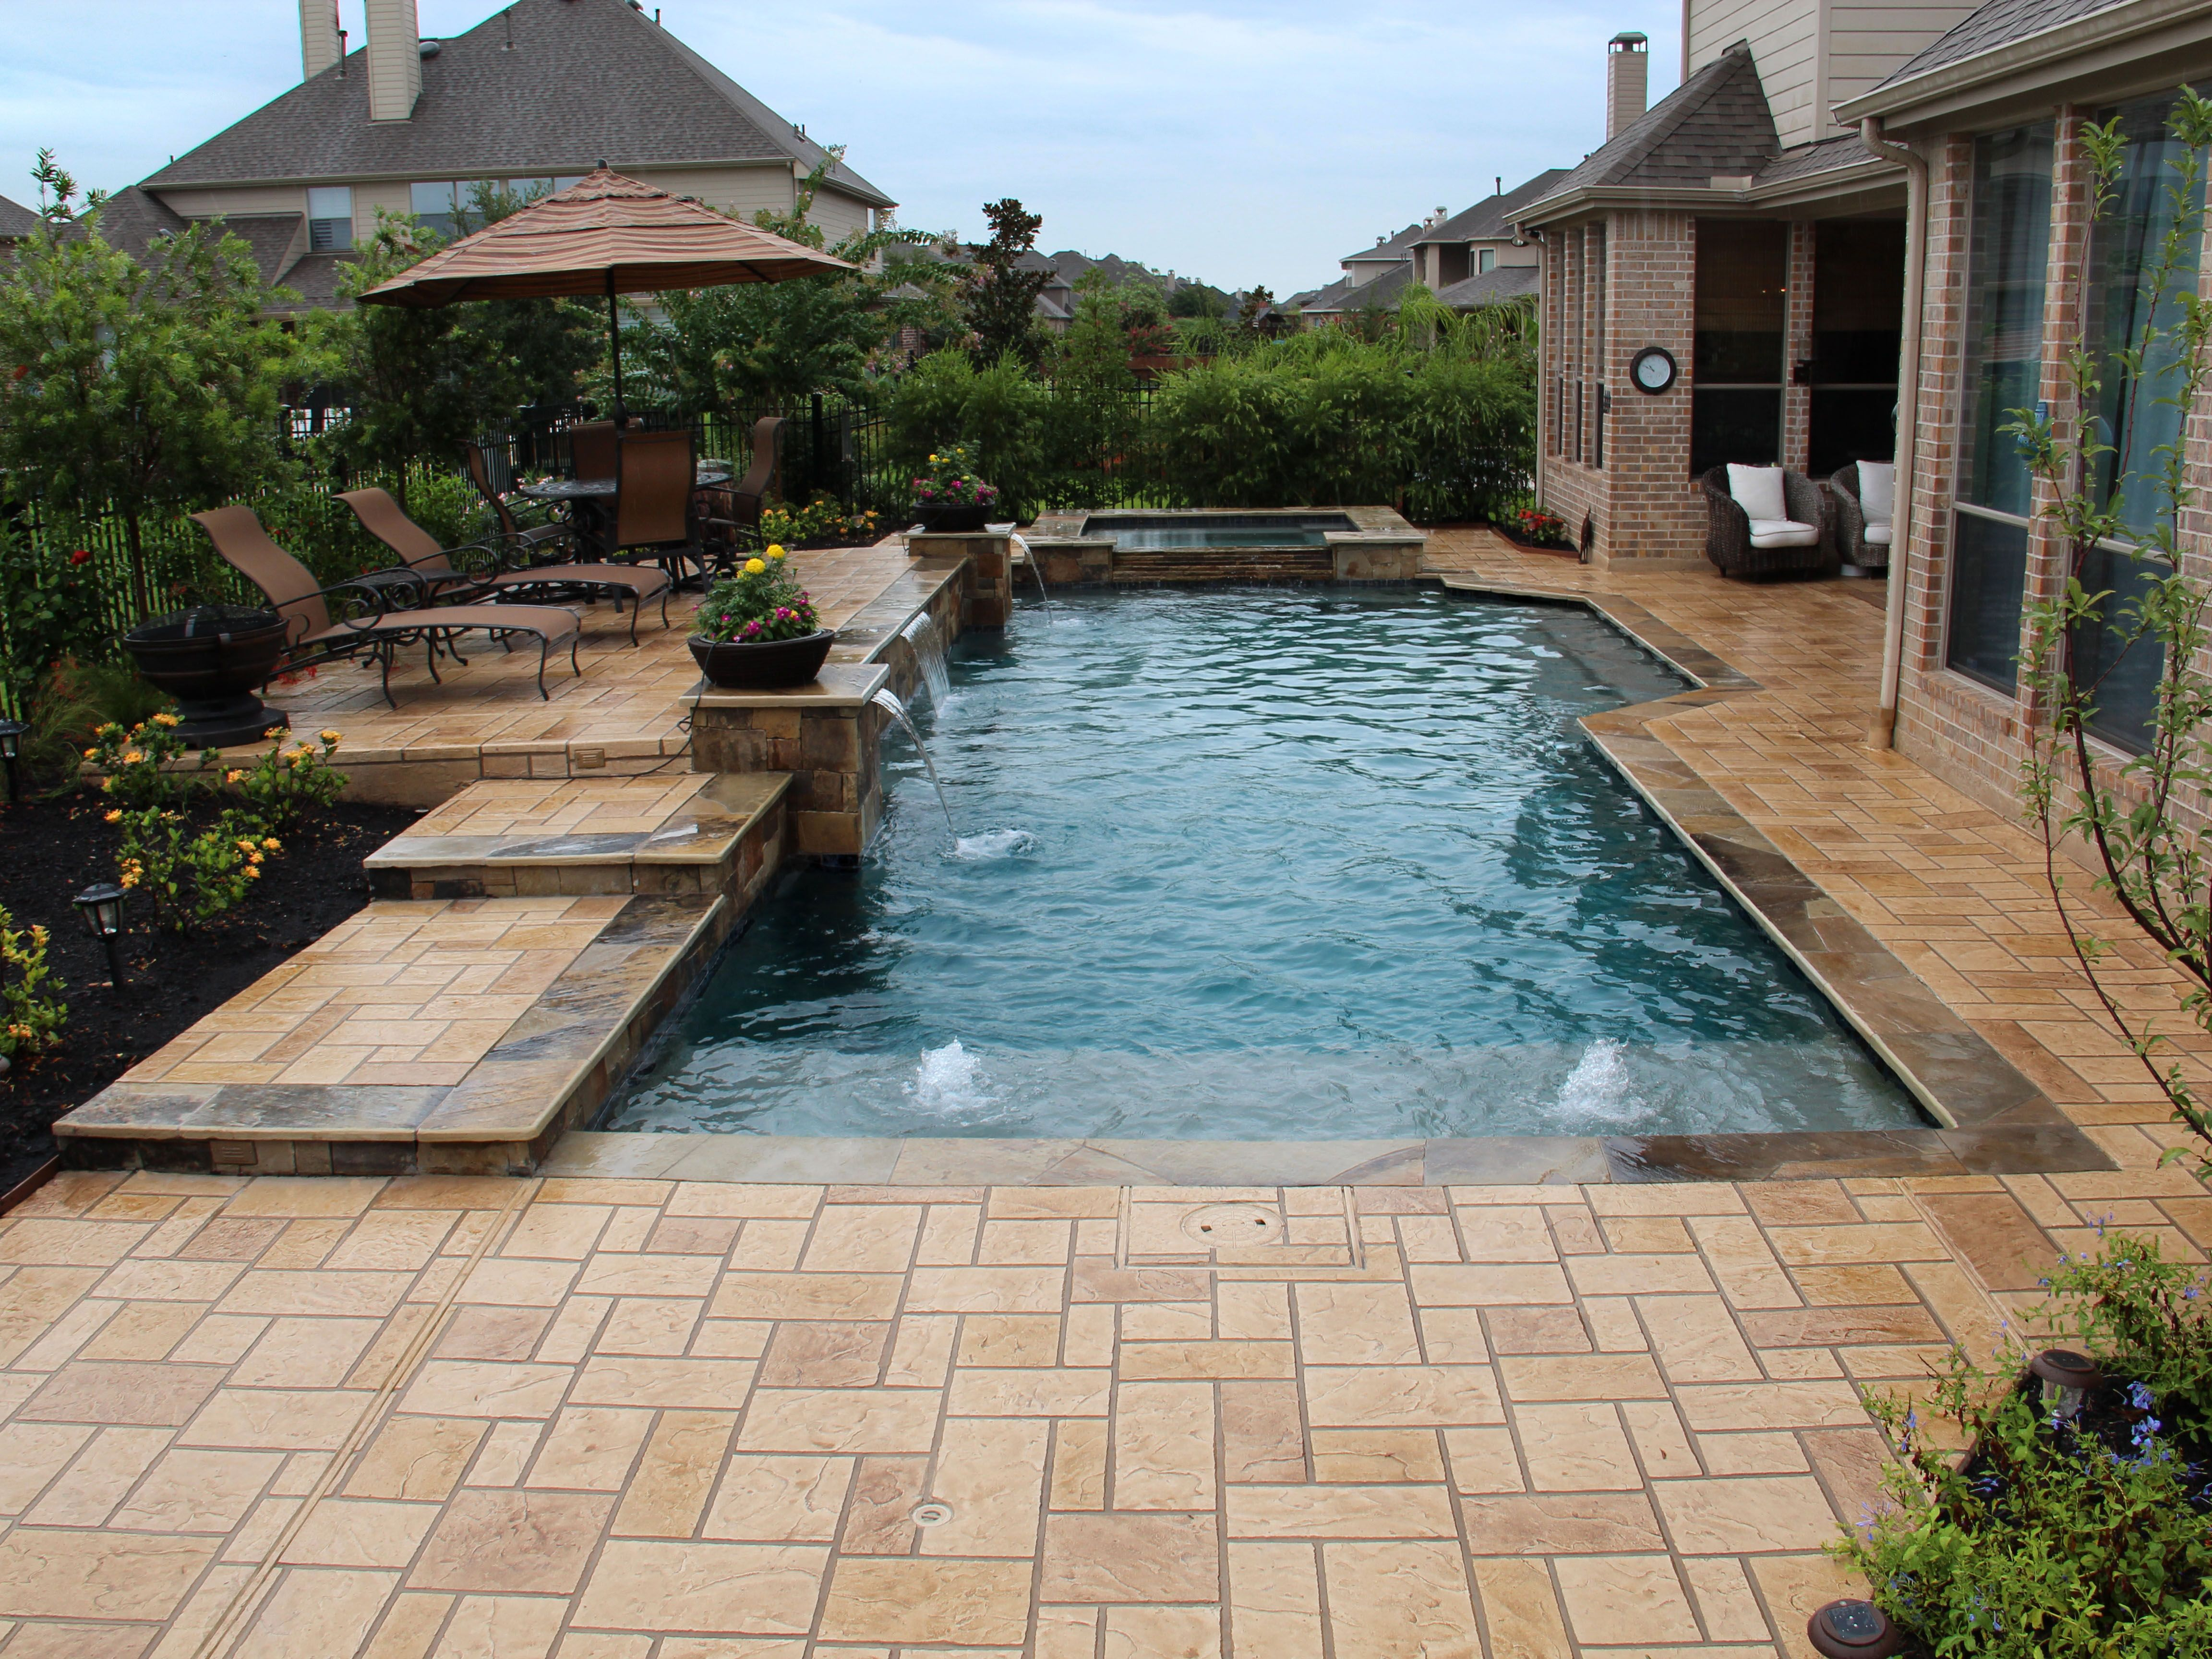 Contemporary Swimming Pools Design 135 Custom Outdoors Swimming Pool Designs Backyard Pool Swimming Pools